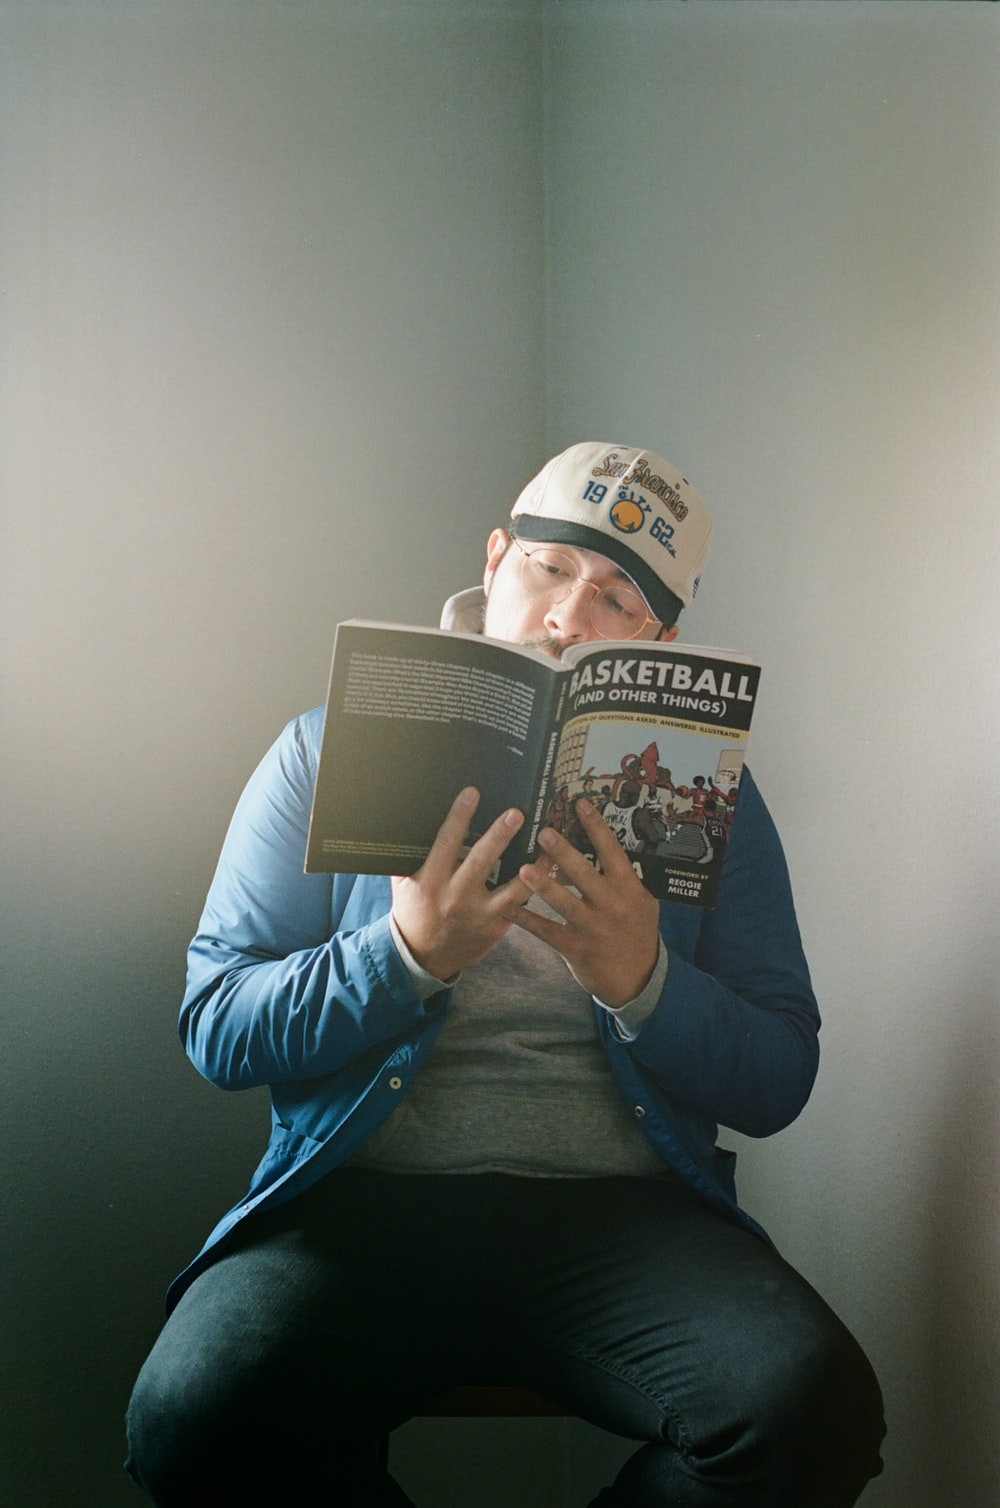 man in blue jacket reading book